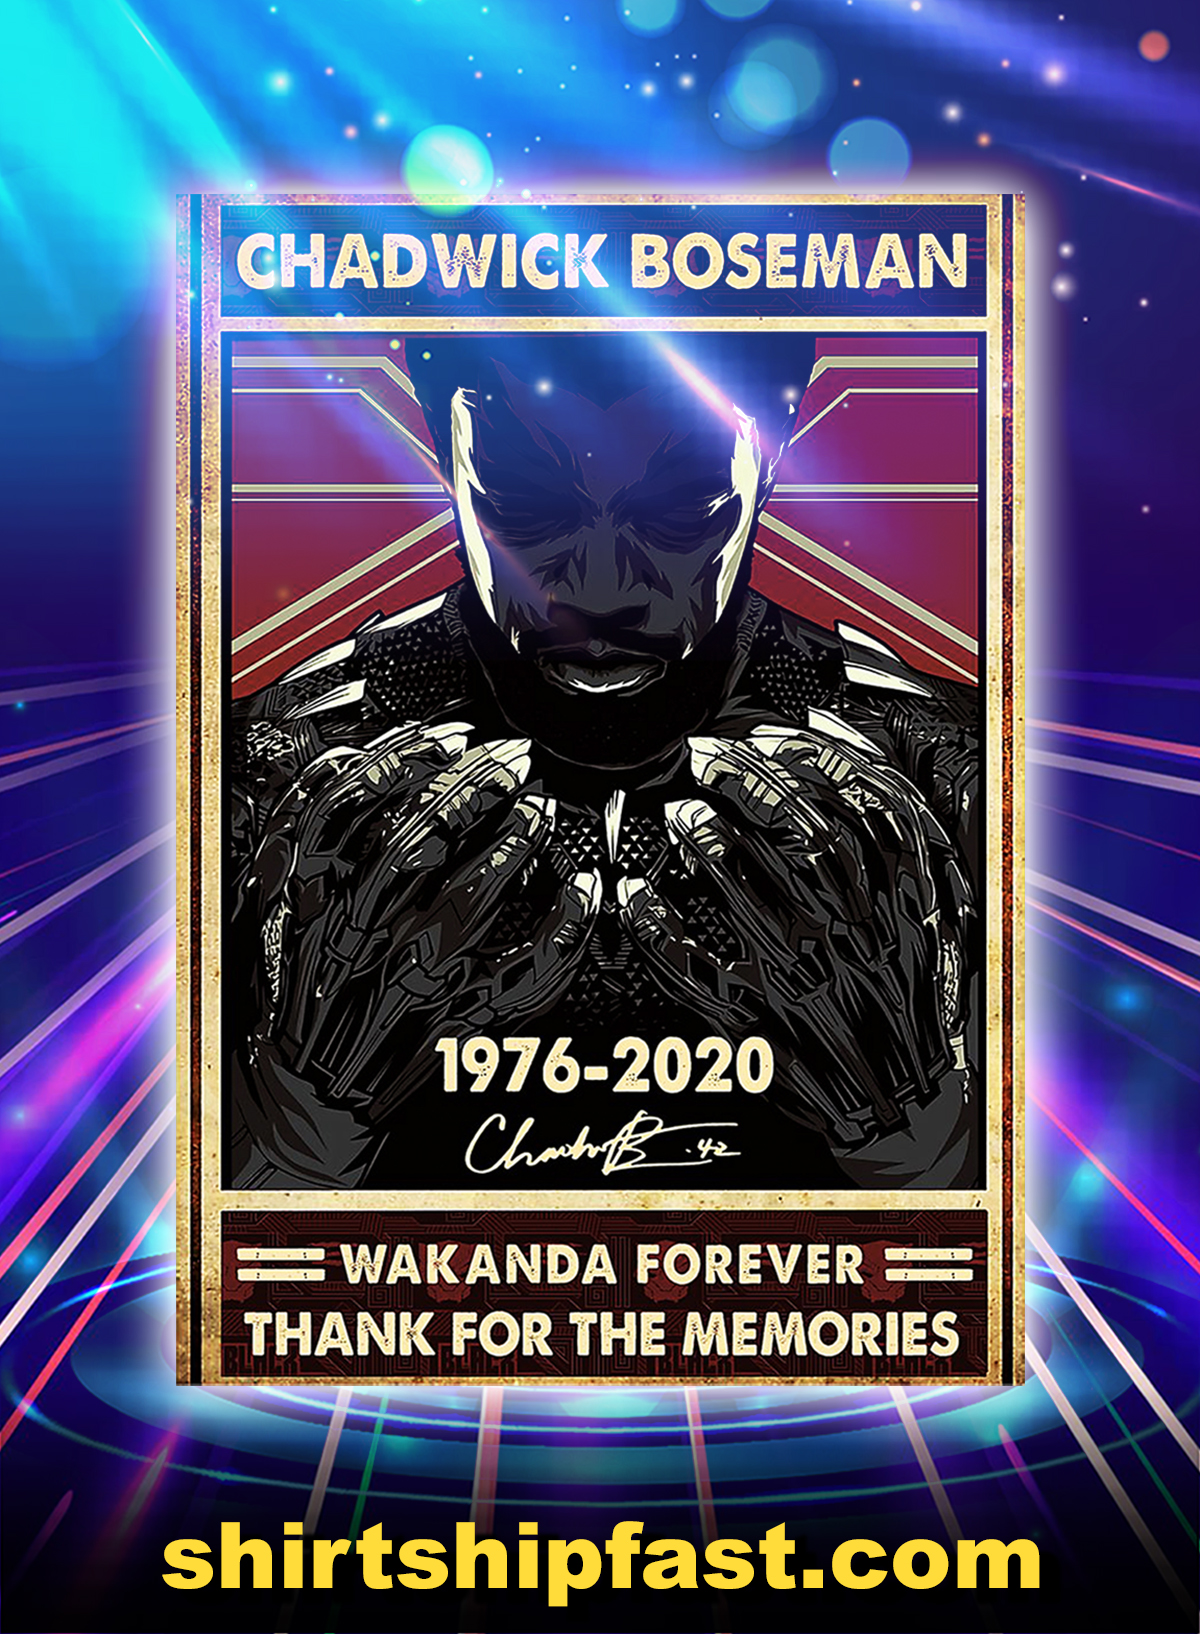 Chadwick boseman wakanda forever thank for the memories poster - A1